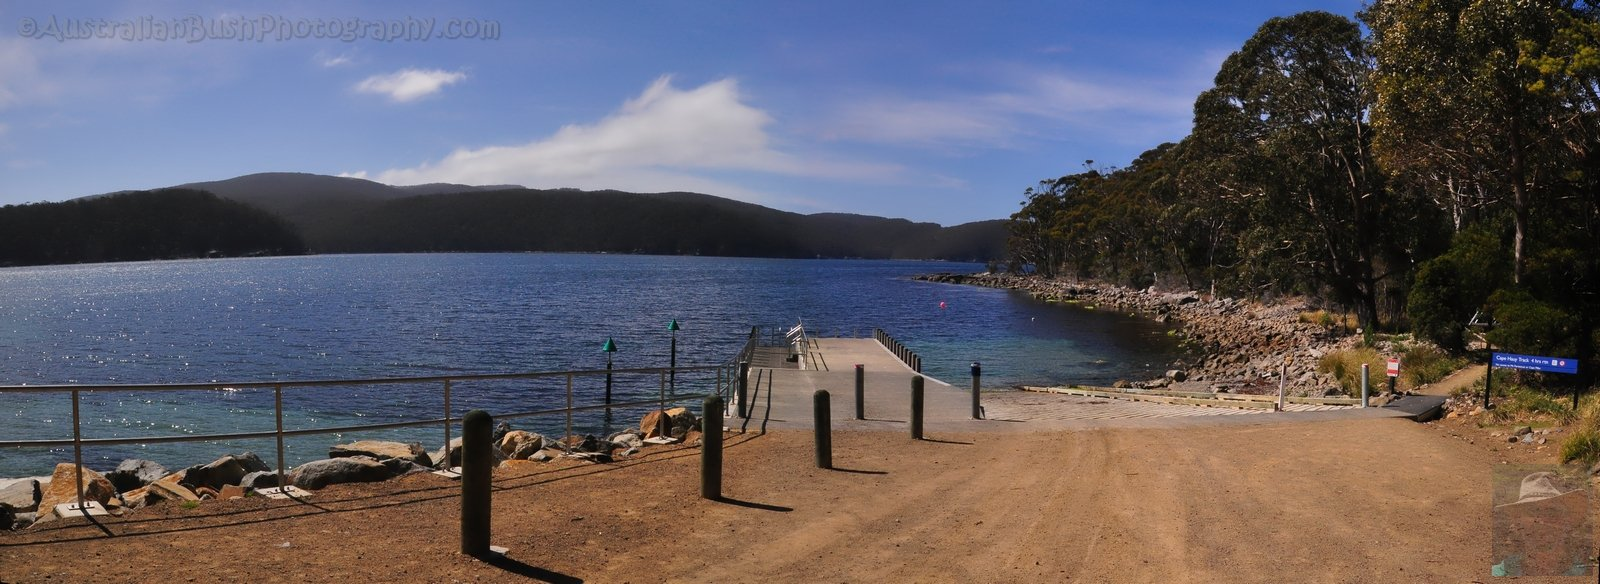 Fortescue Bay Boat Ramp